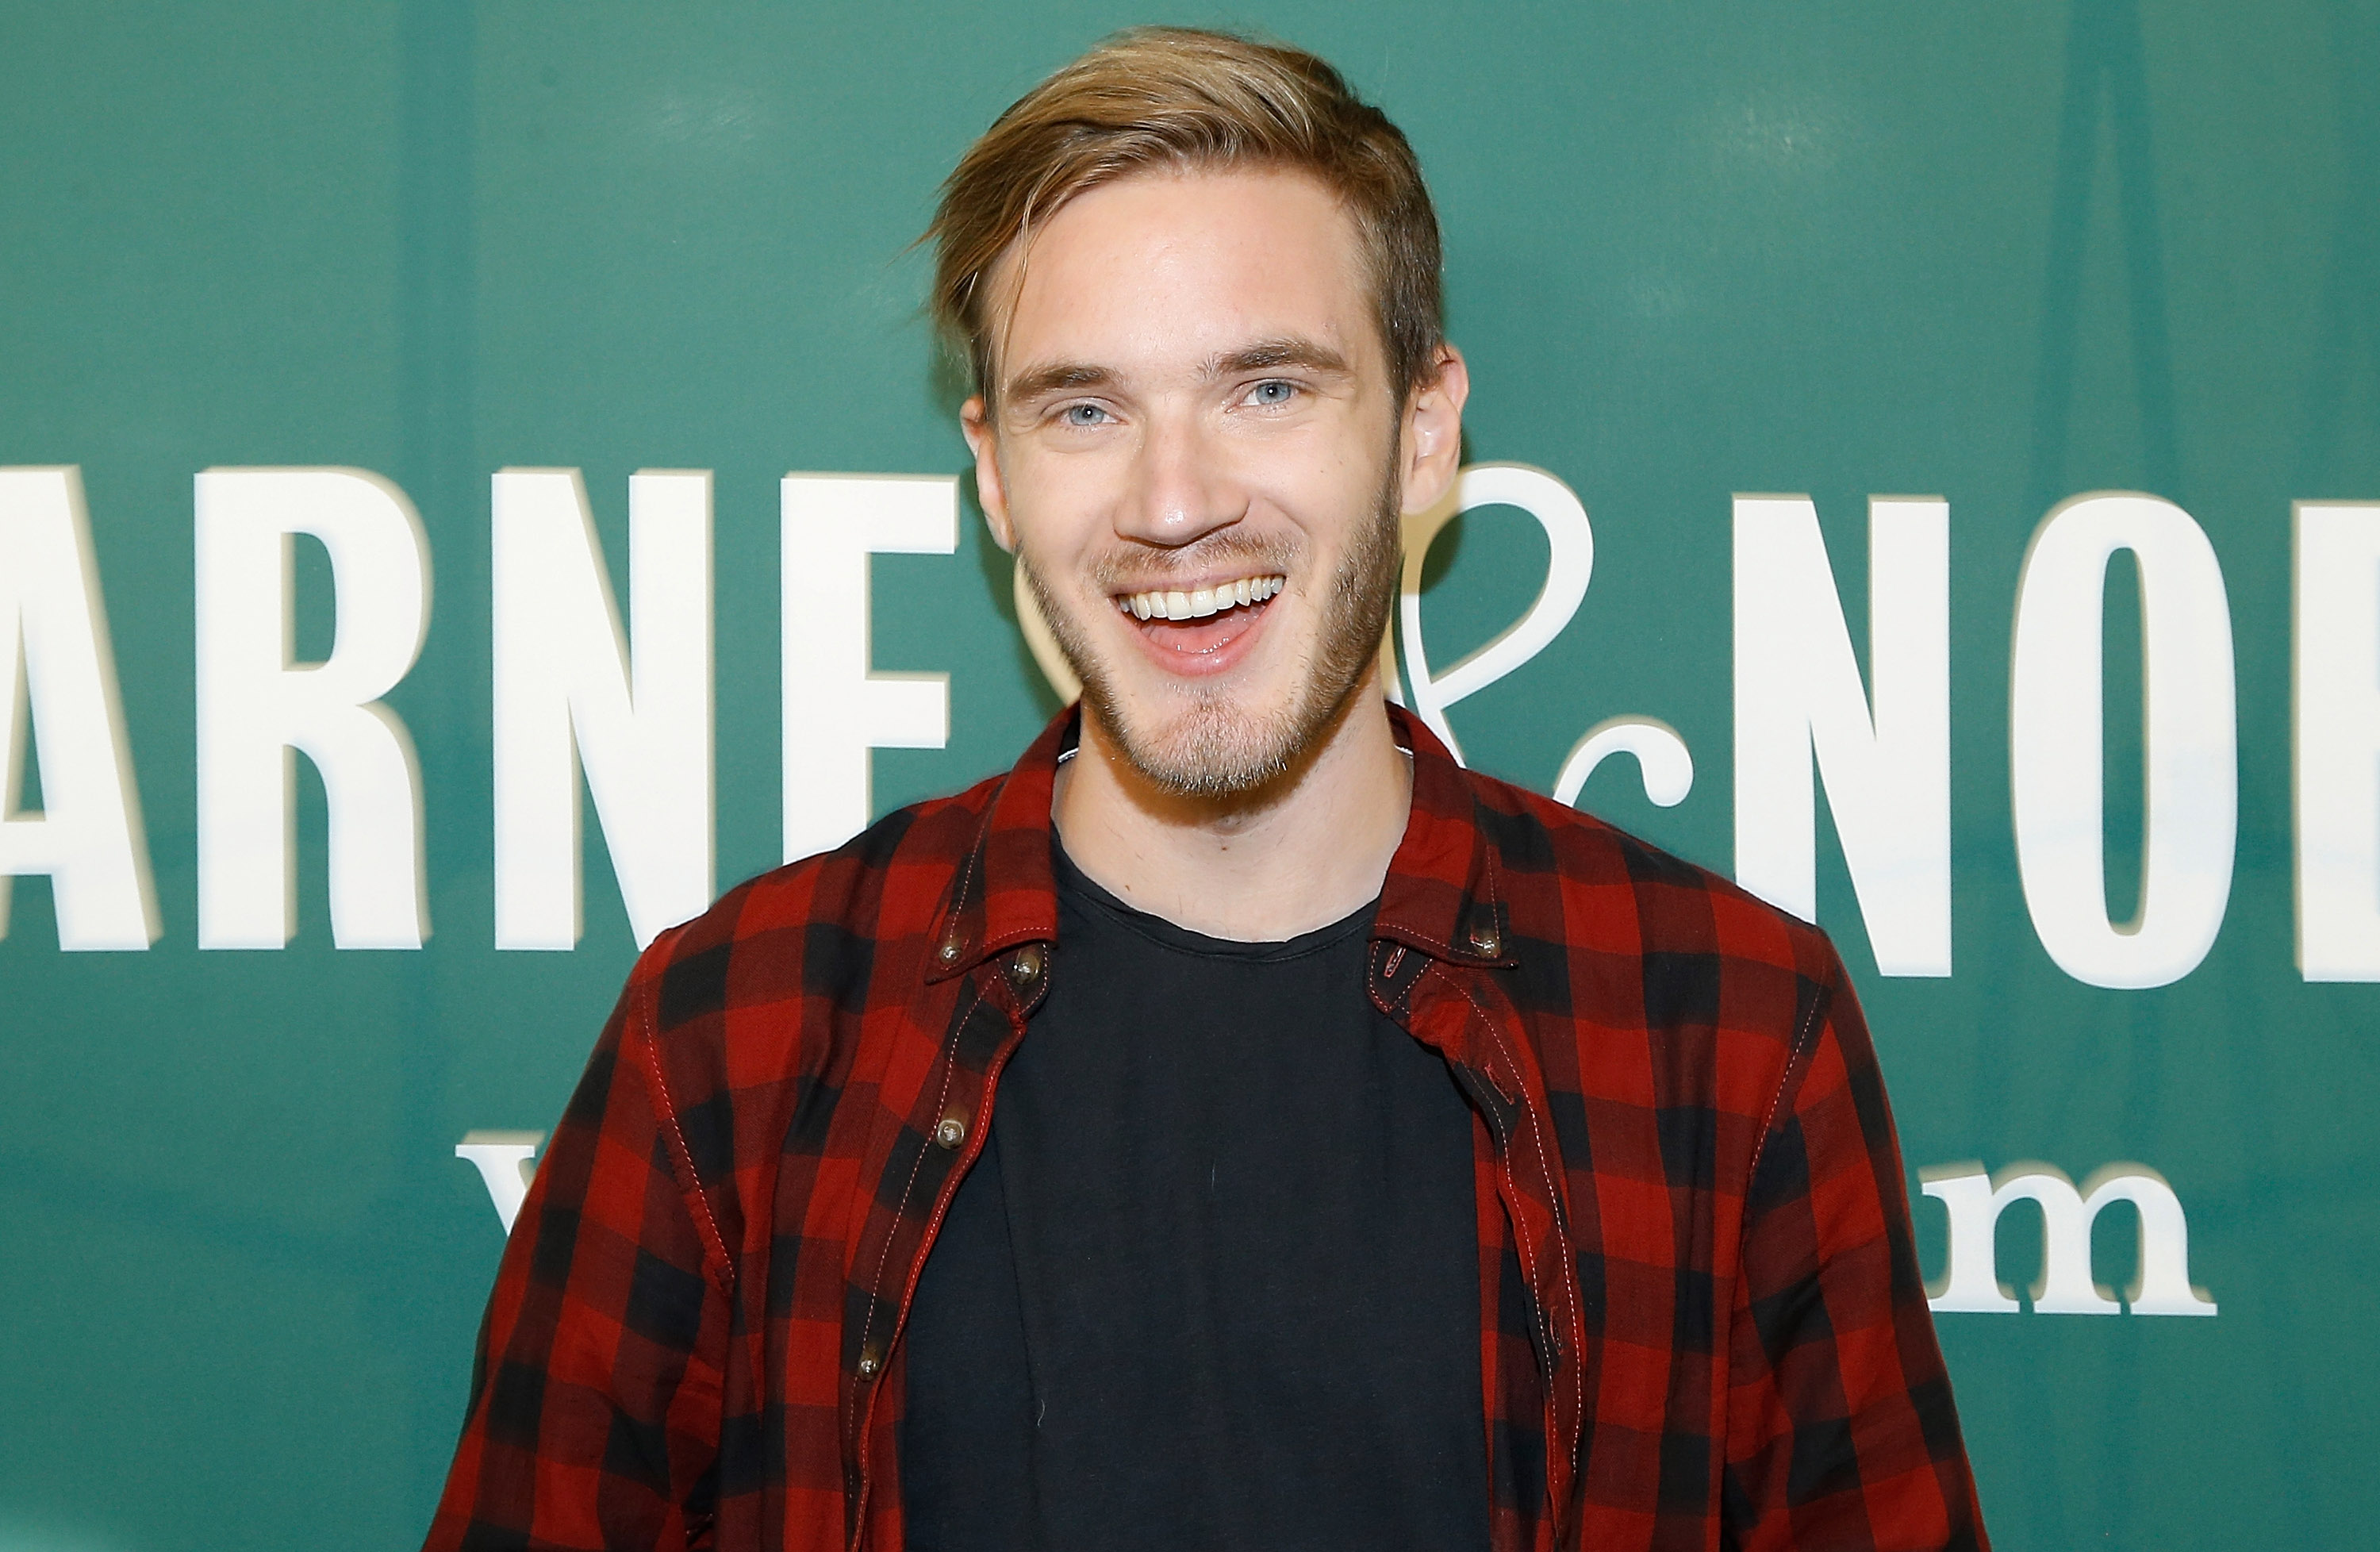 Popular Youtuber PewDiePie Censored in China After Posting Video Critical of Regime